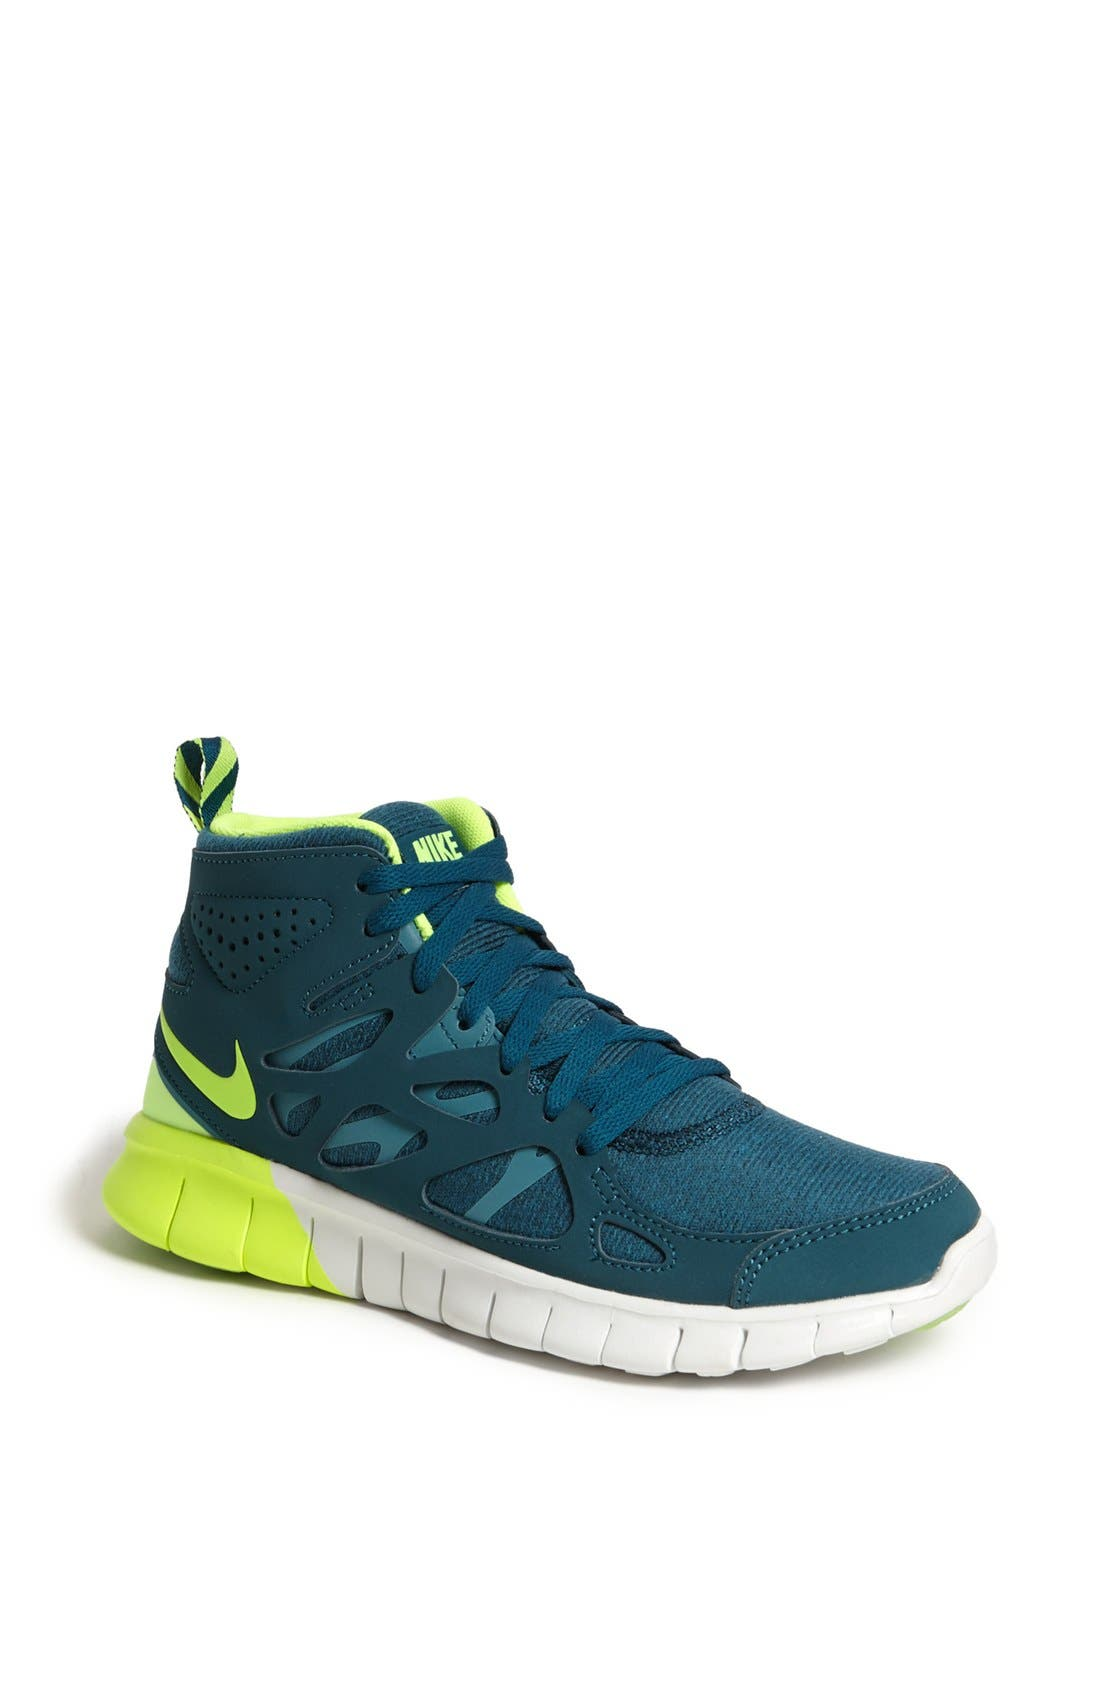 Alternate Image 1 Selected - Nike 'Free Run 2' Sneaker Boot